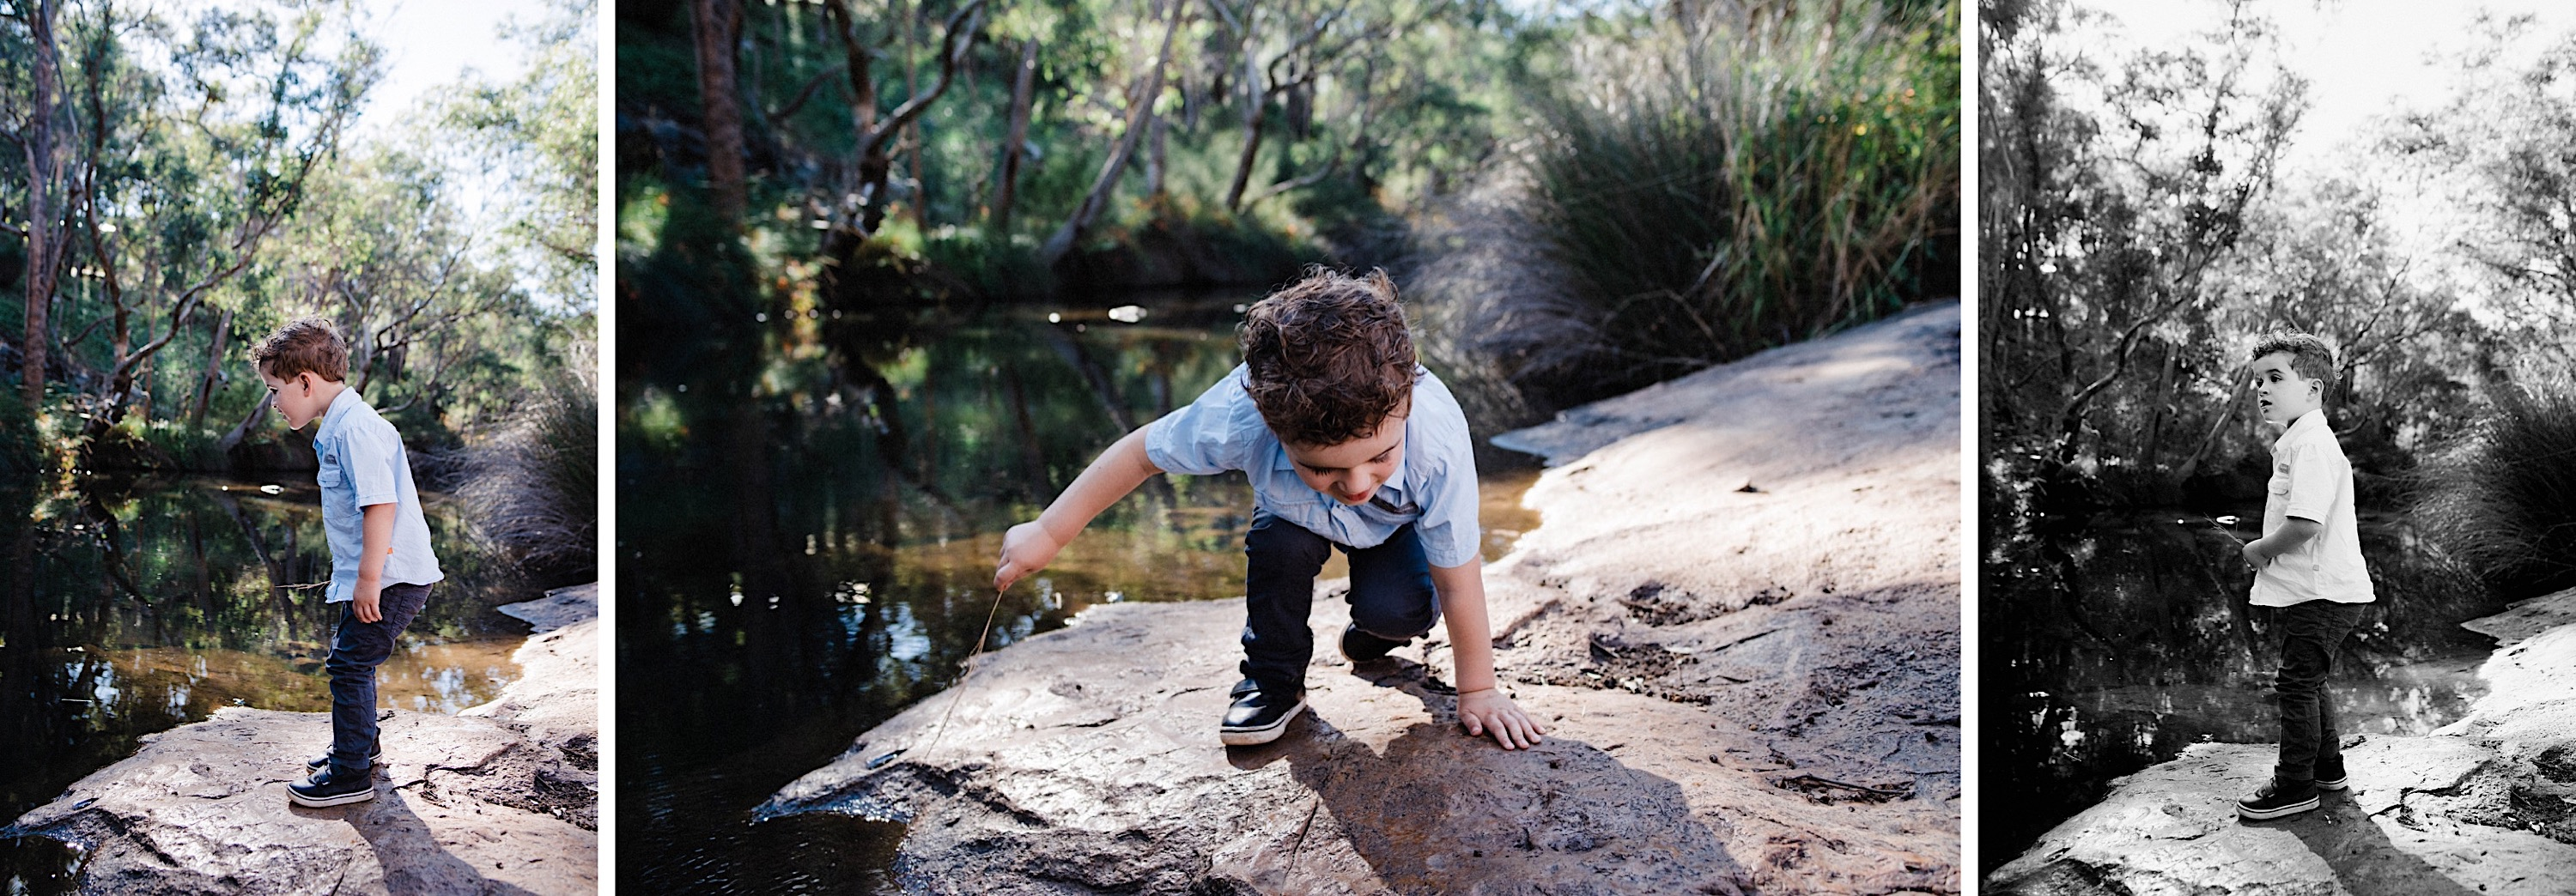 A few candid photos of a little boy as he climbs around a rock taken by a Lifestyle Family Photographer.